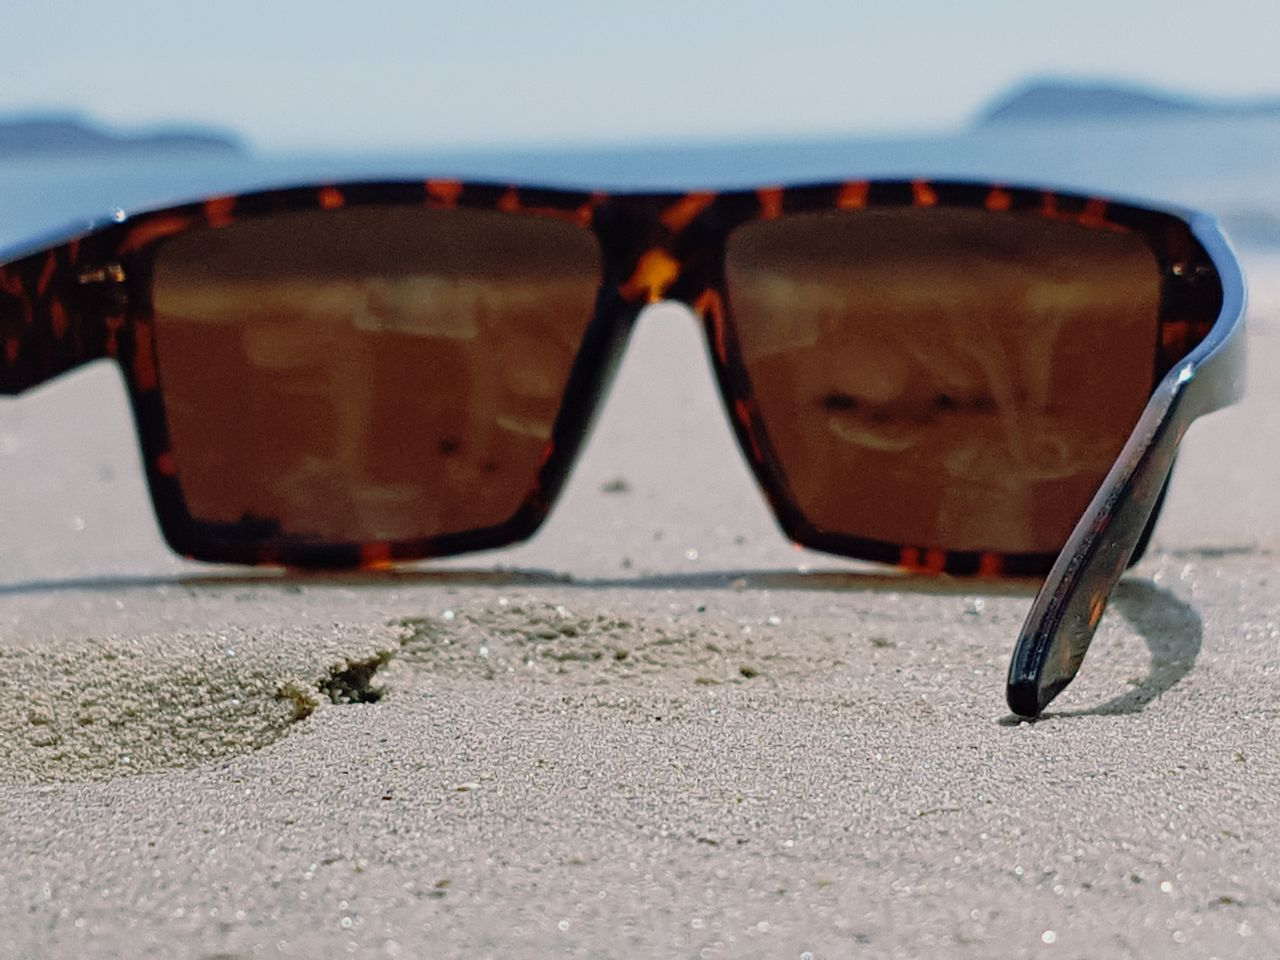 Sunglasses No People Sand Beach Relaxing Nature Uniqueperspectives Close-up Ocean Outdoors Sky Mica